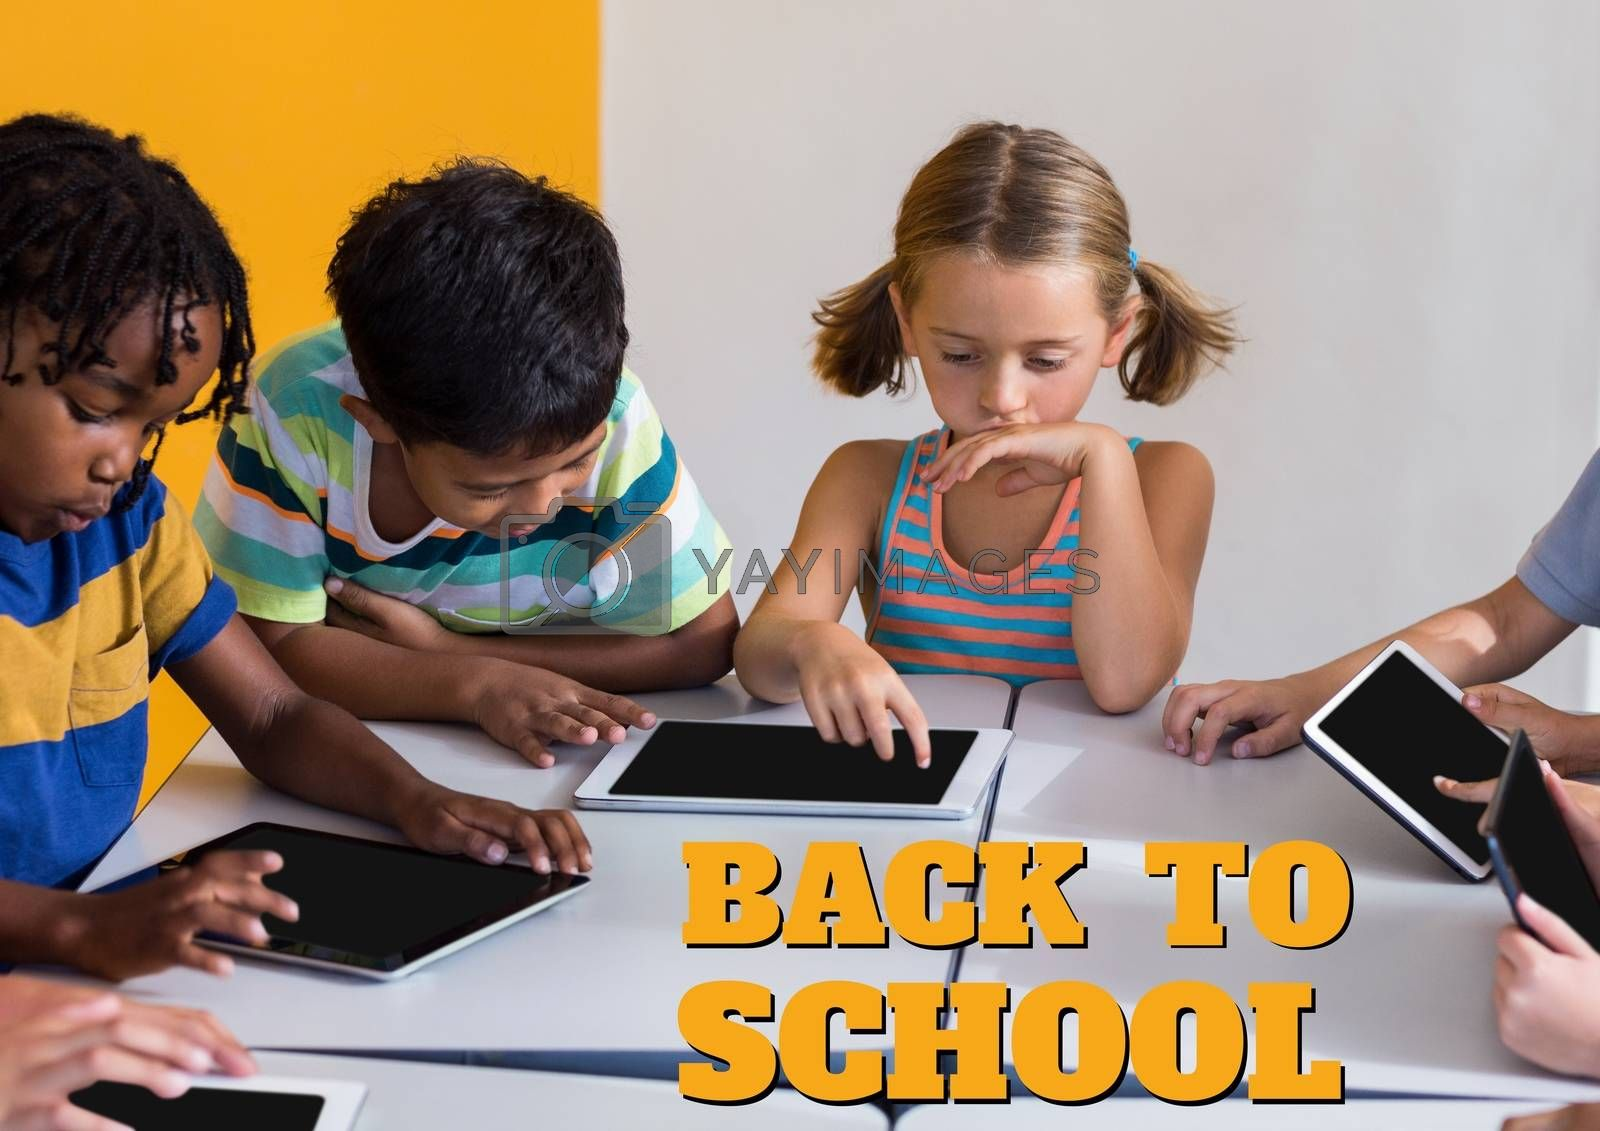 Digital composite of Education and back to school text and kids looking at a tablet at class